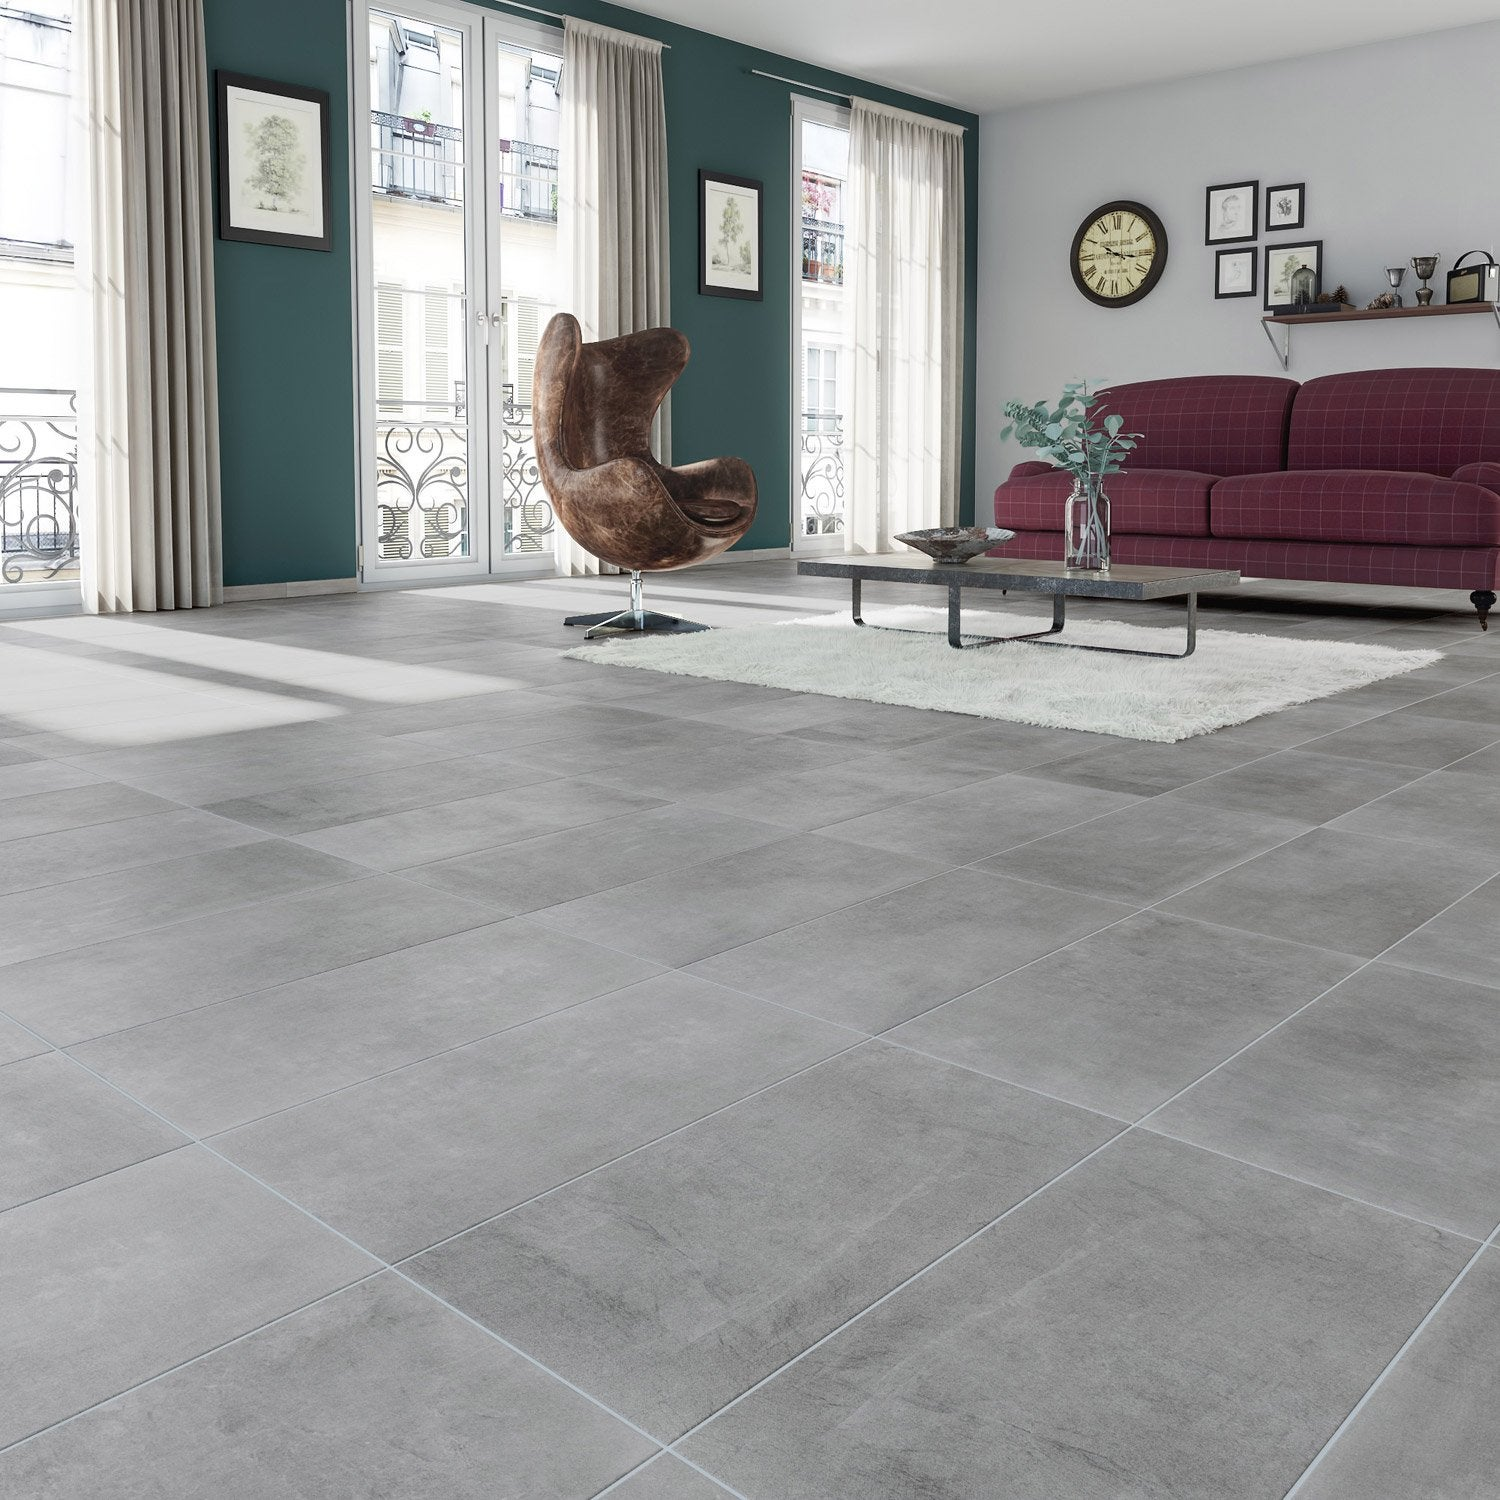 Carrelage 80x80 Gris Of Carrelage Sol Et Mur Gris Effet B Ton New Cottage X L